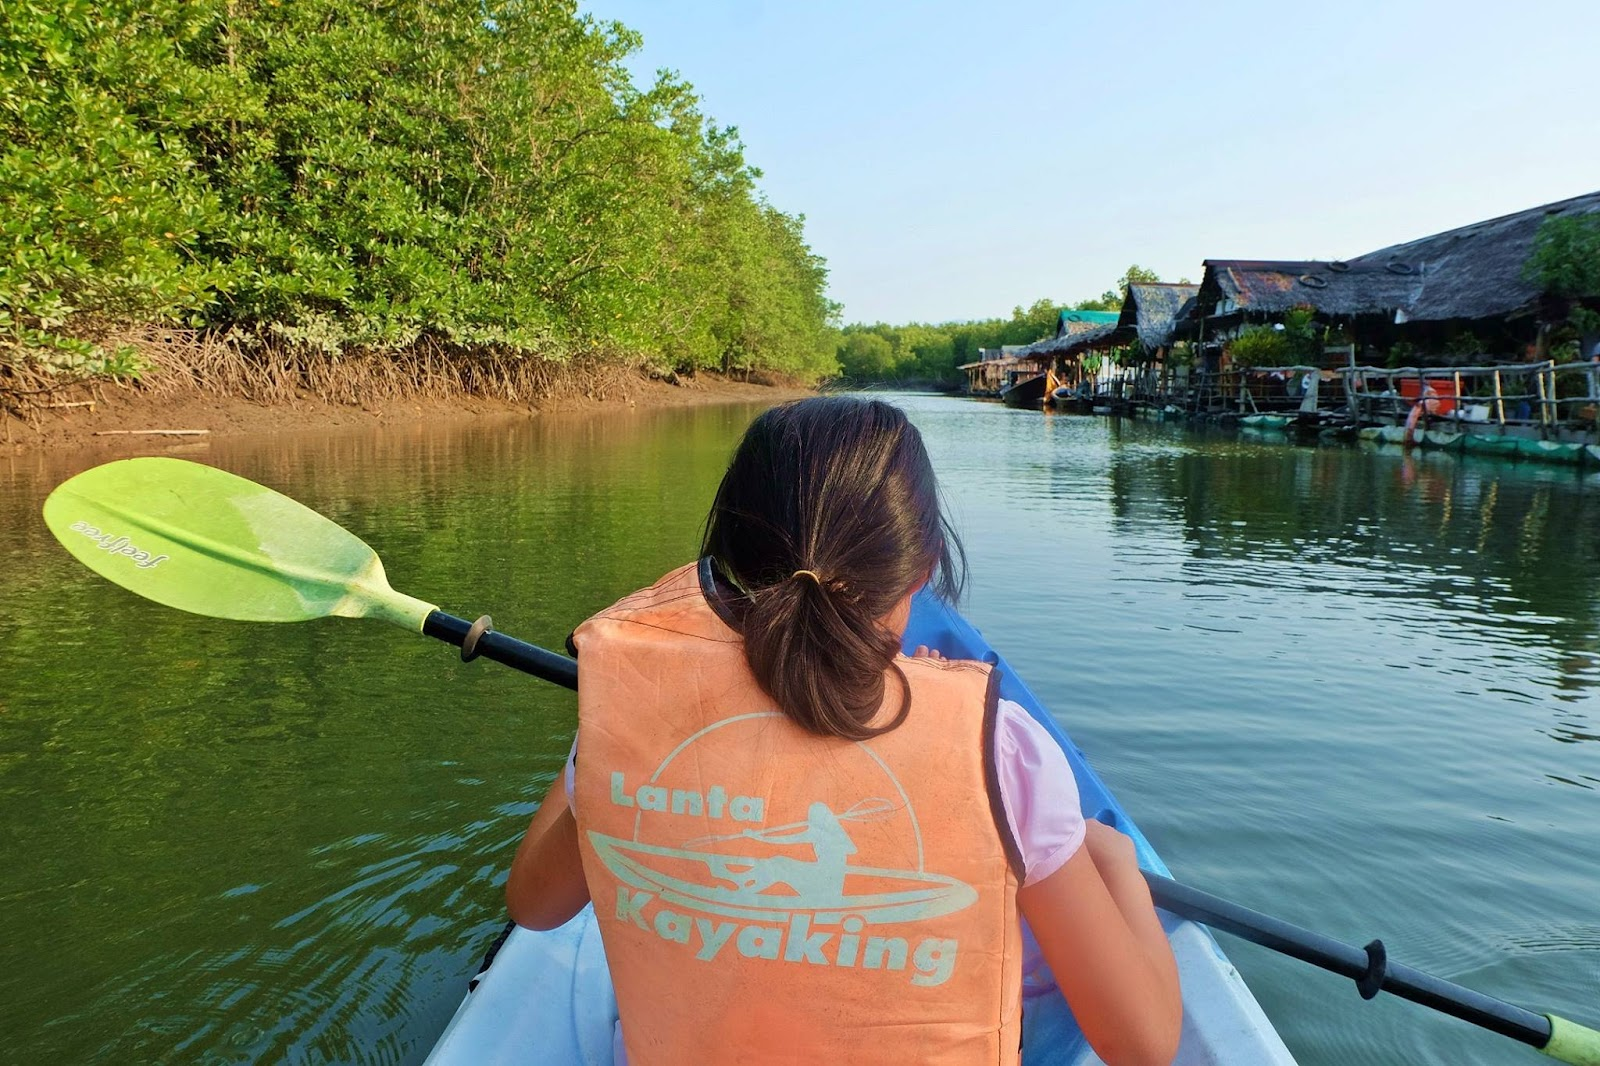 Lanta Mangrove Tour with Sea Cave Kayaking at Koh Talabeng